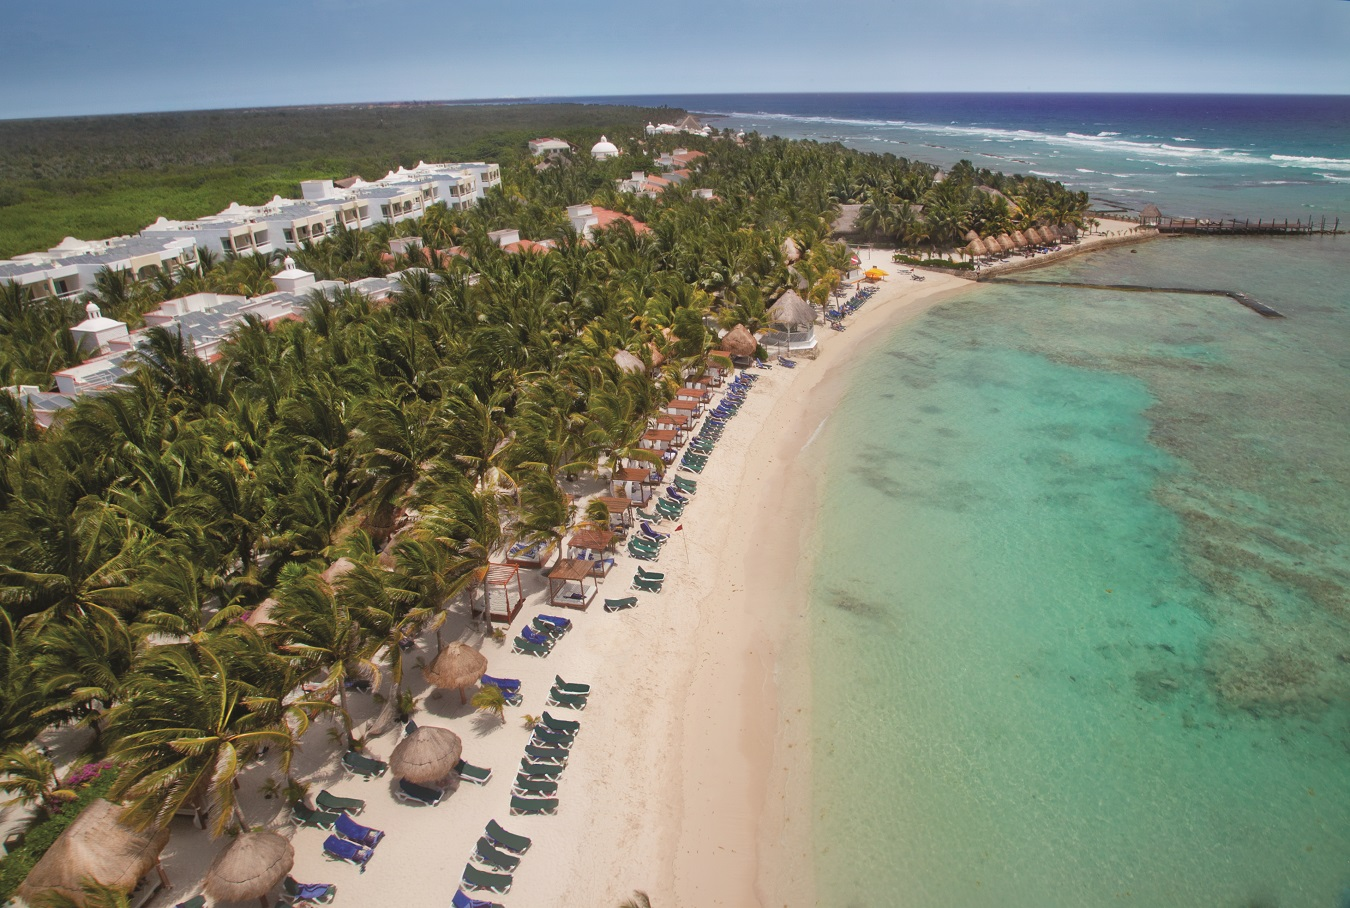 dorado seaside suites aerial view